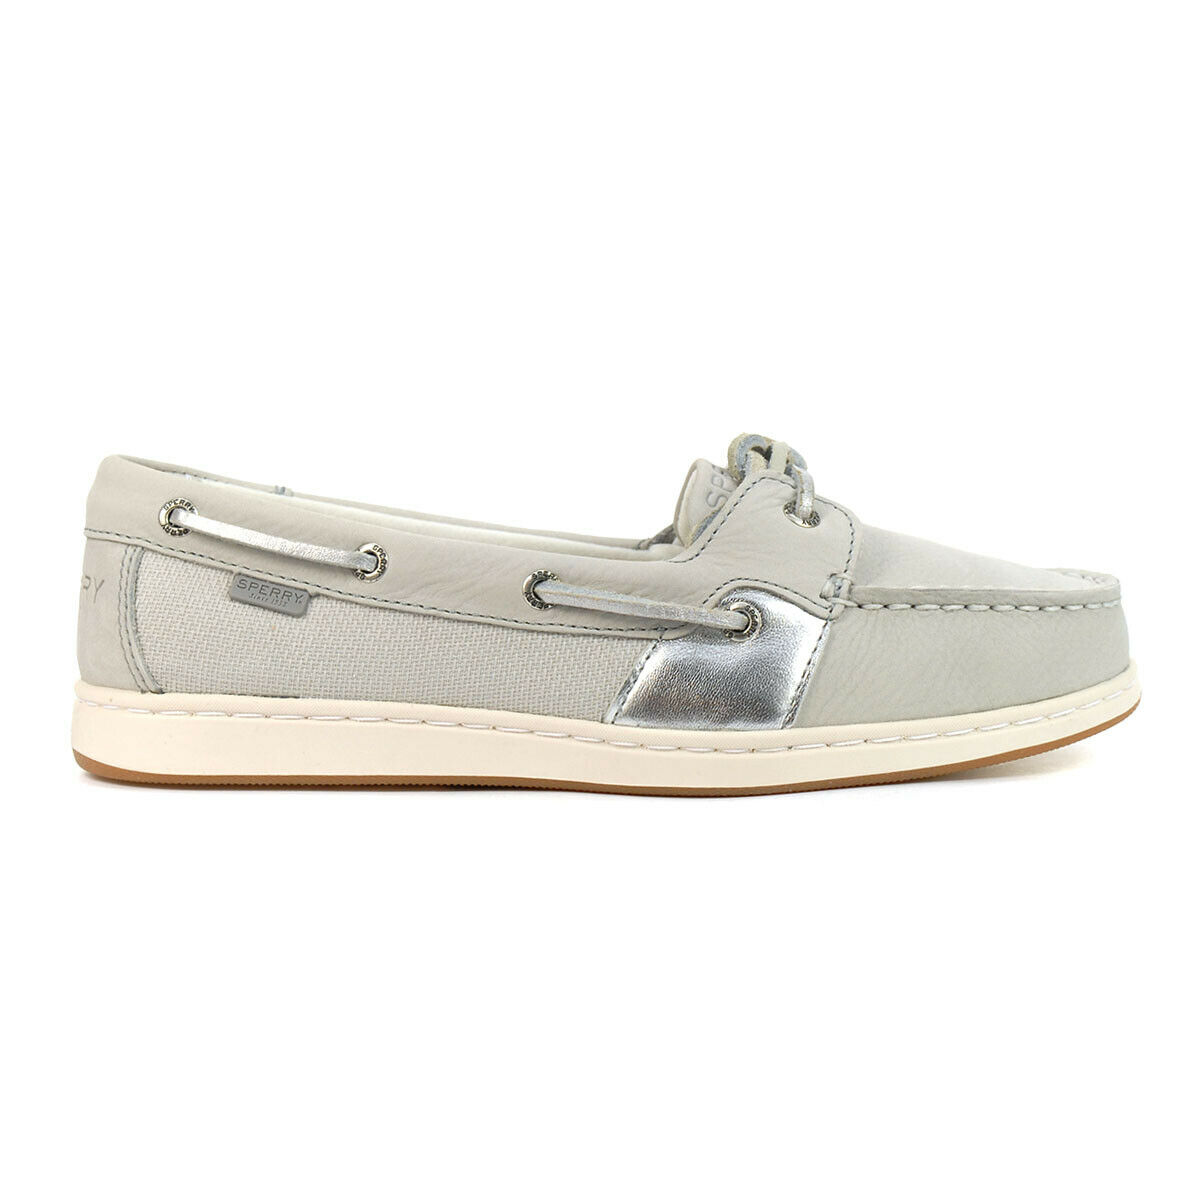 Sperry Women's Coastfish 1-Eye Vapor/Silver Boat Shoes STS85981 NEW